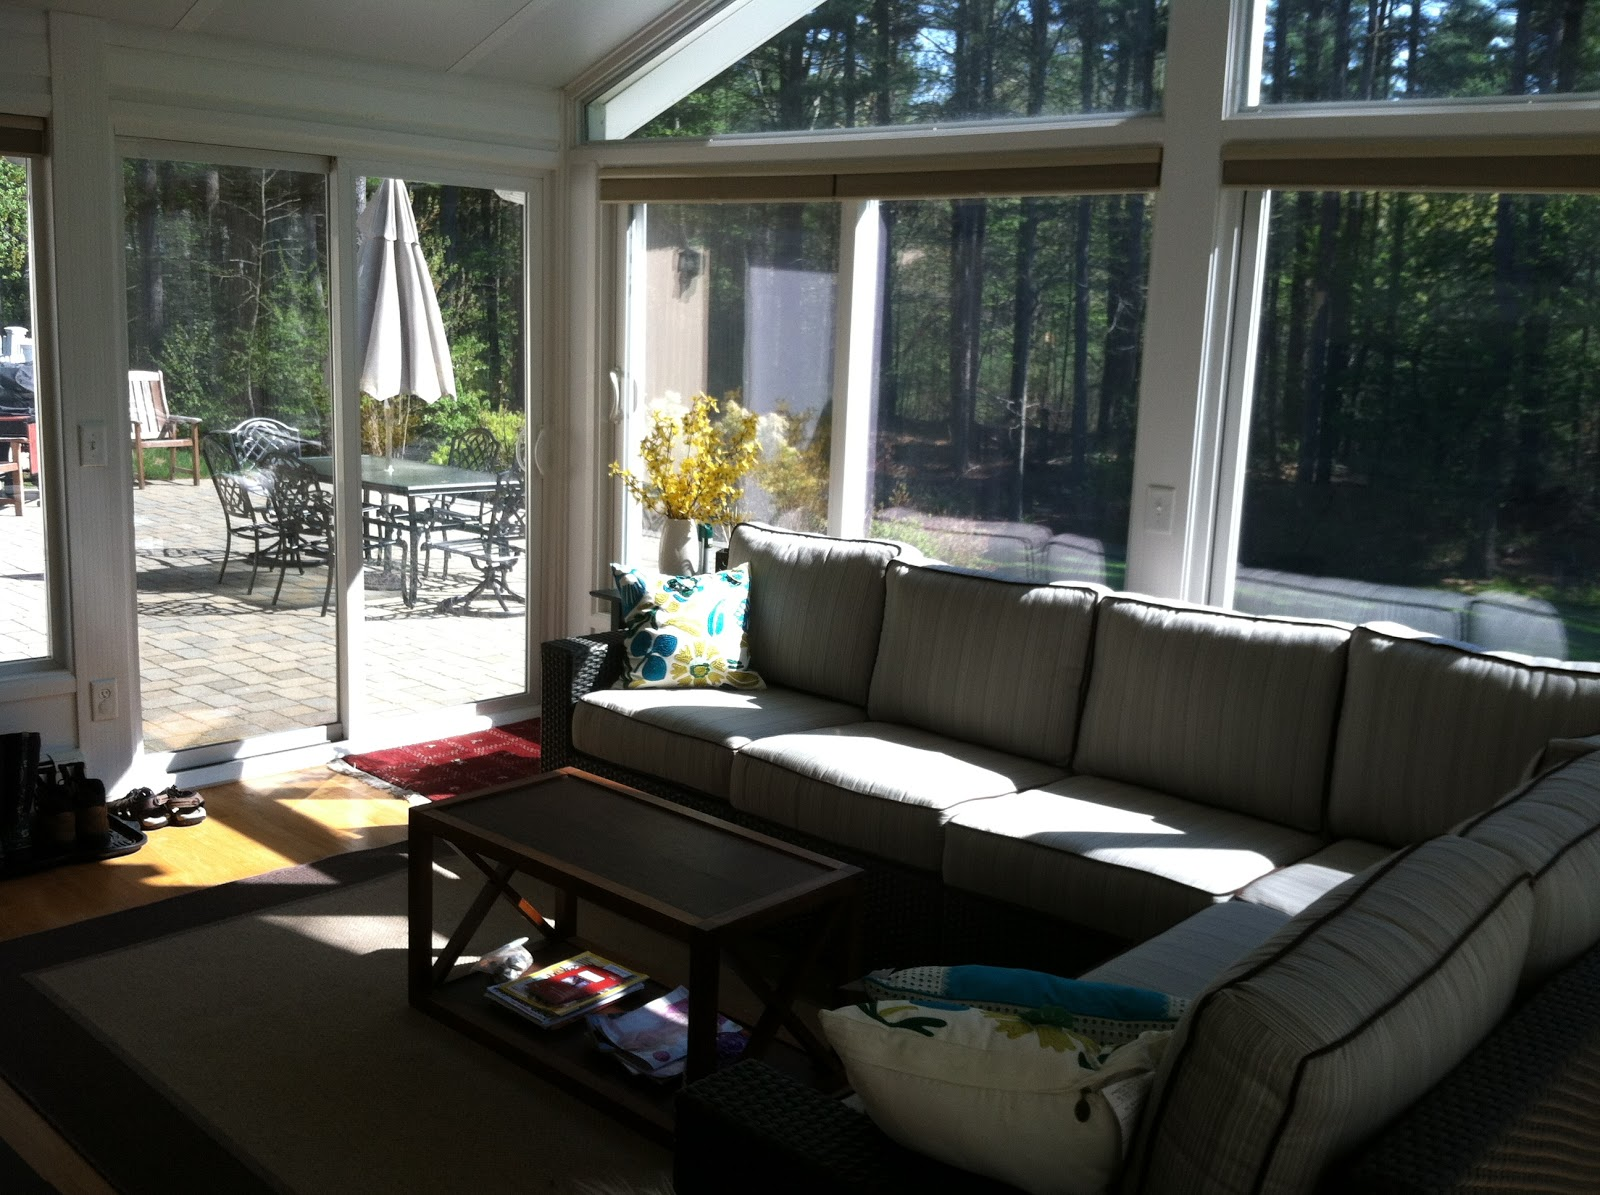 ... tv and furniture for the sunroom i m looking forward to enjoying a